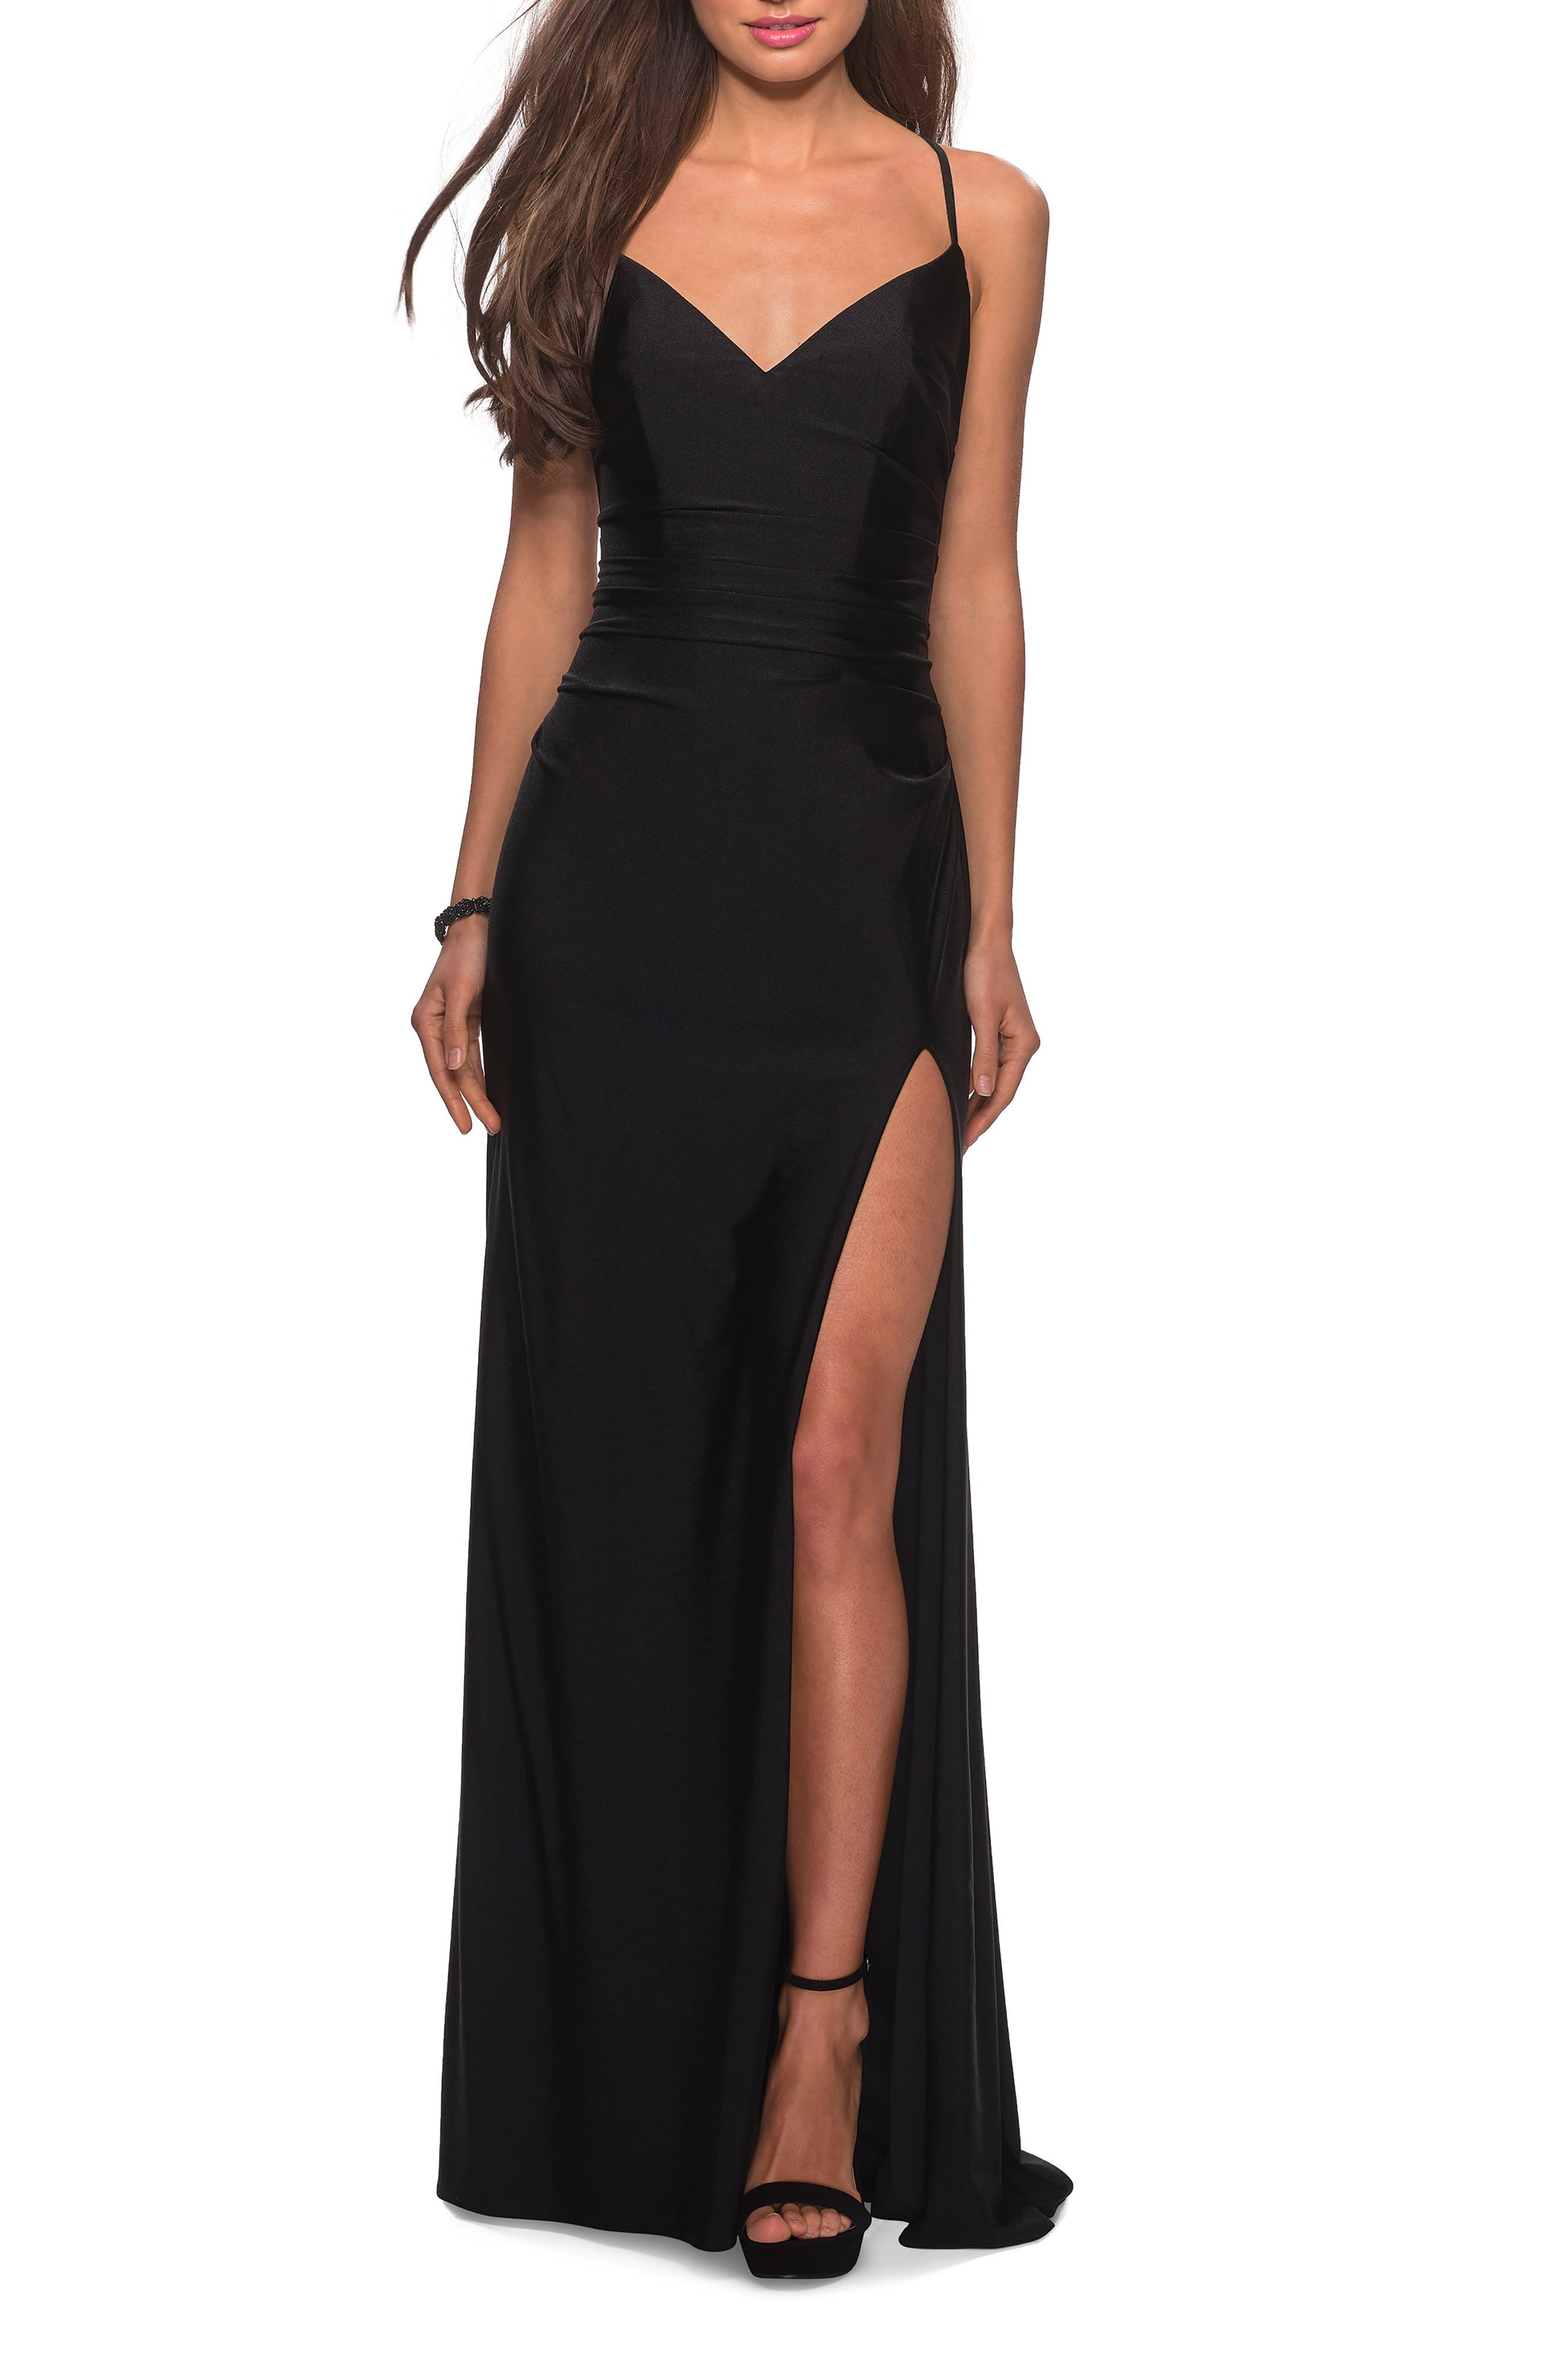 La Femme Cross Back Satin Jersey Gown, Black